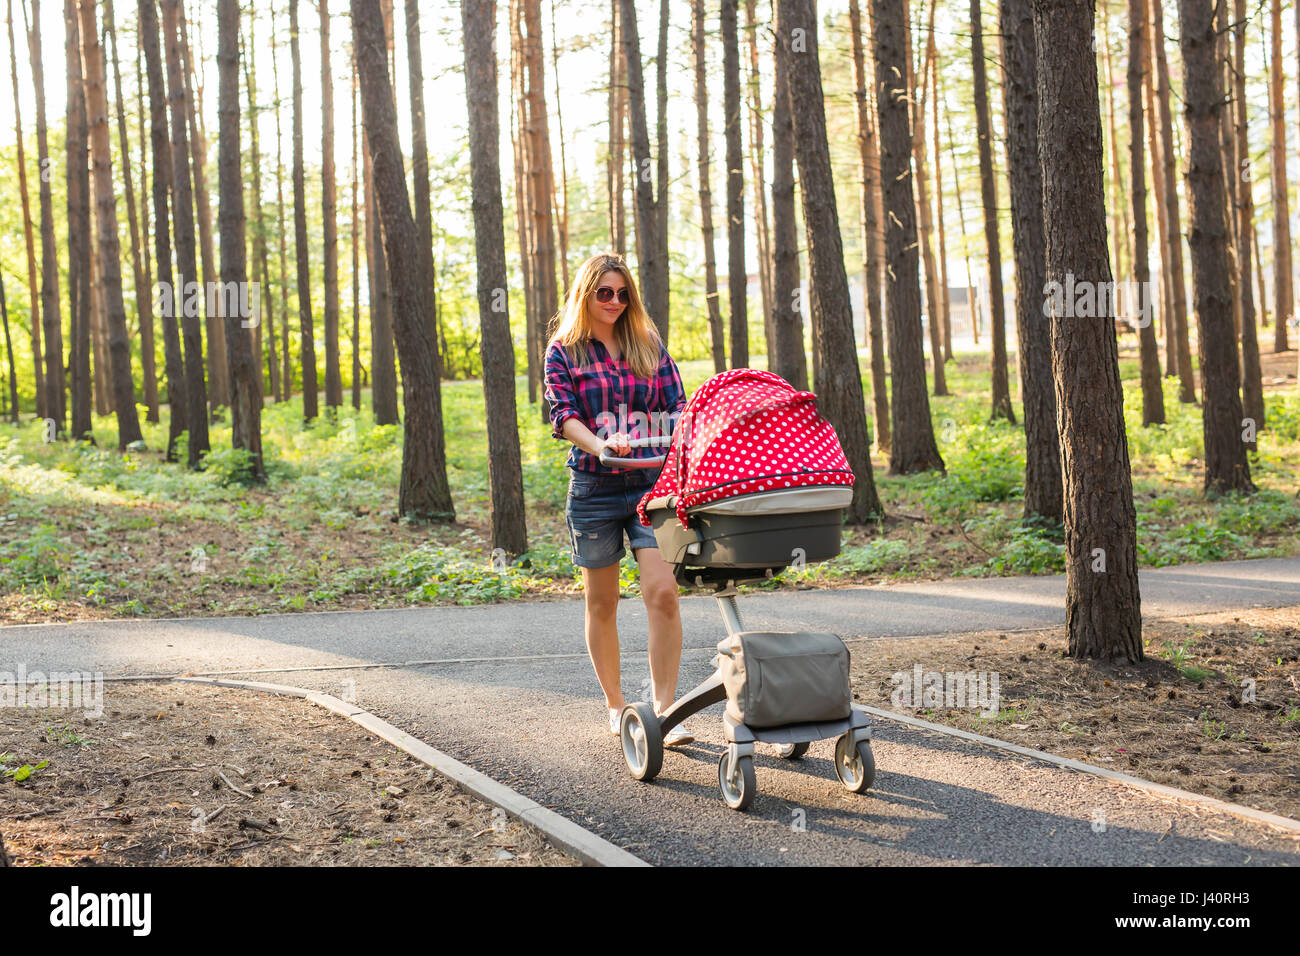 237409c7d3bf Woman Pushing Baby In Buggy Stock Photos   Woman Pushing Baby In ...